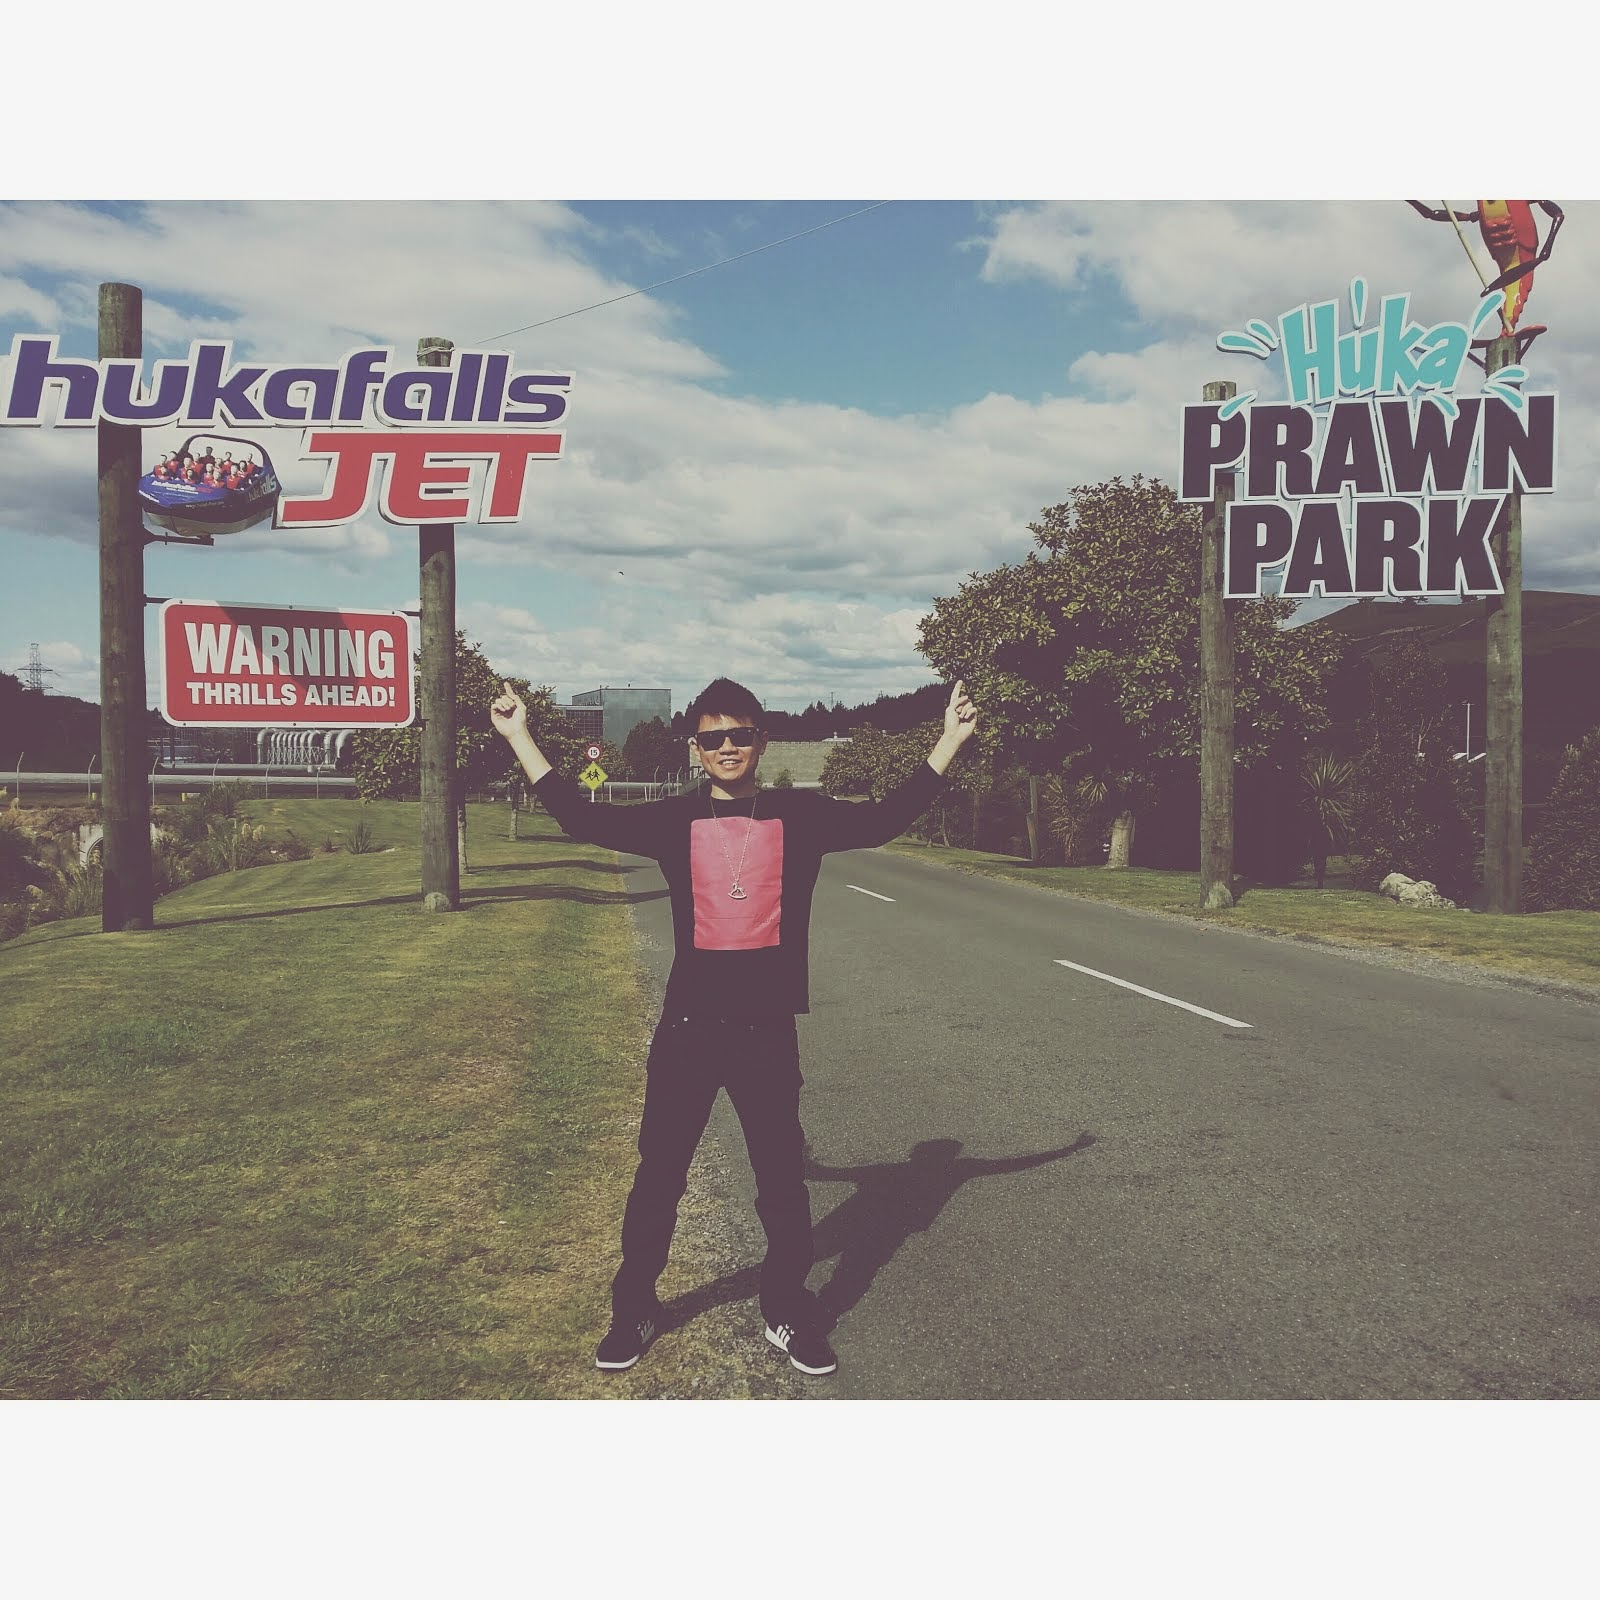 NZ: HUKAFALLS JET AND HUKA PRAWN PARK